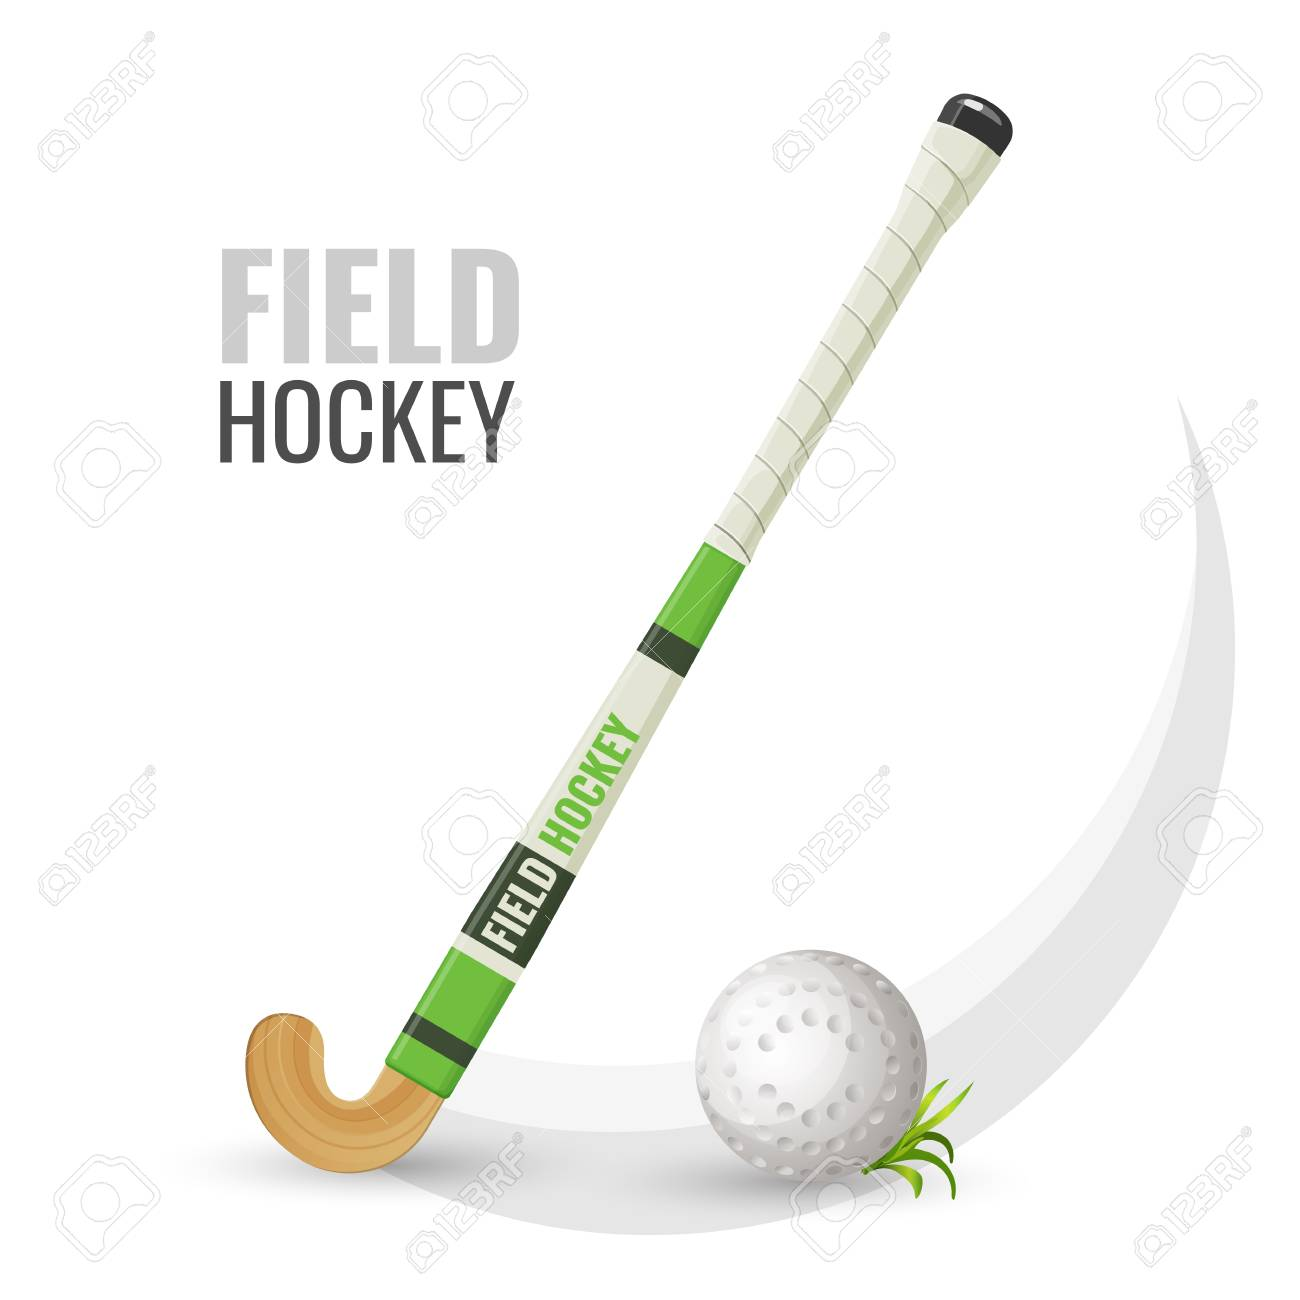 Field hockey competitive game and equipment vector illustration - 104889679